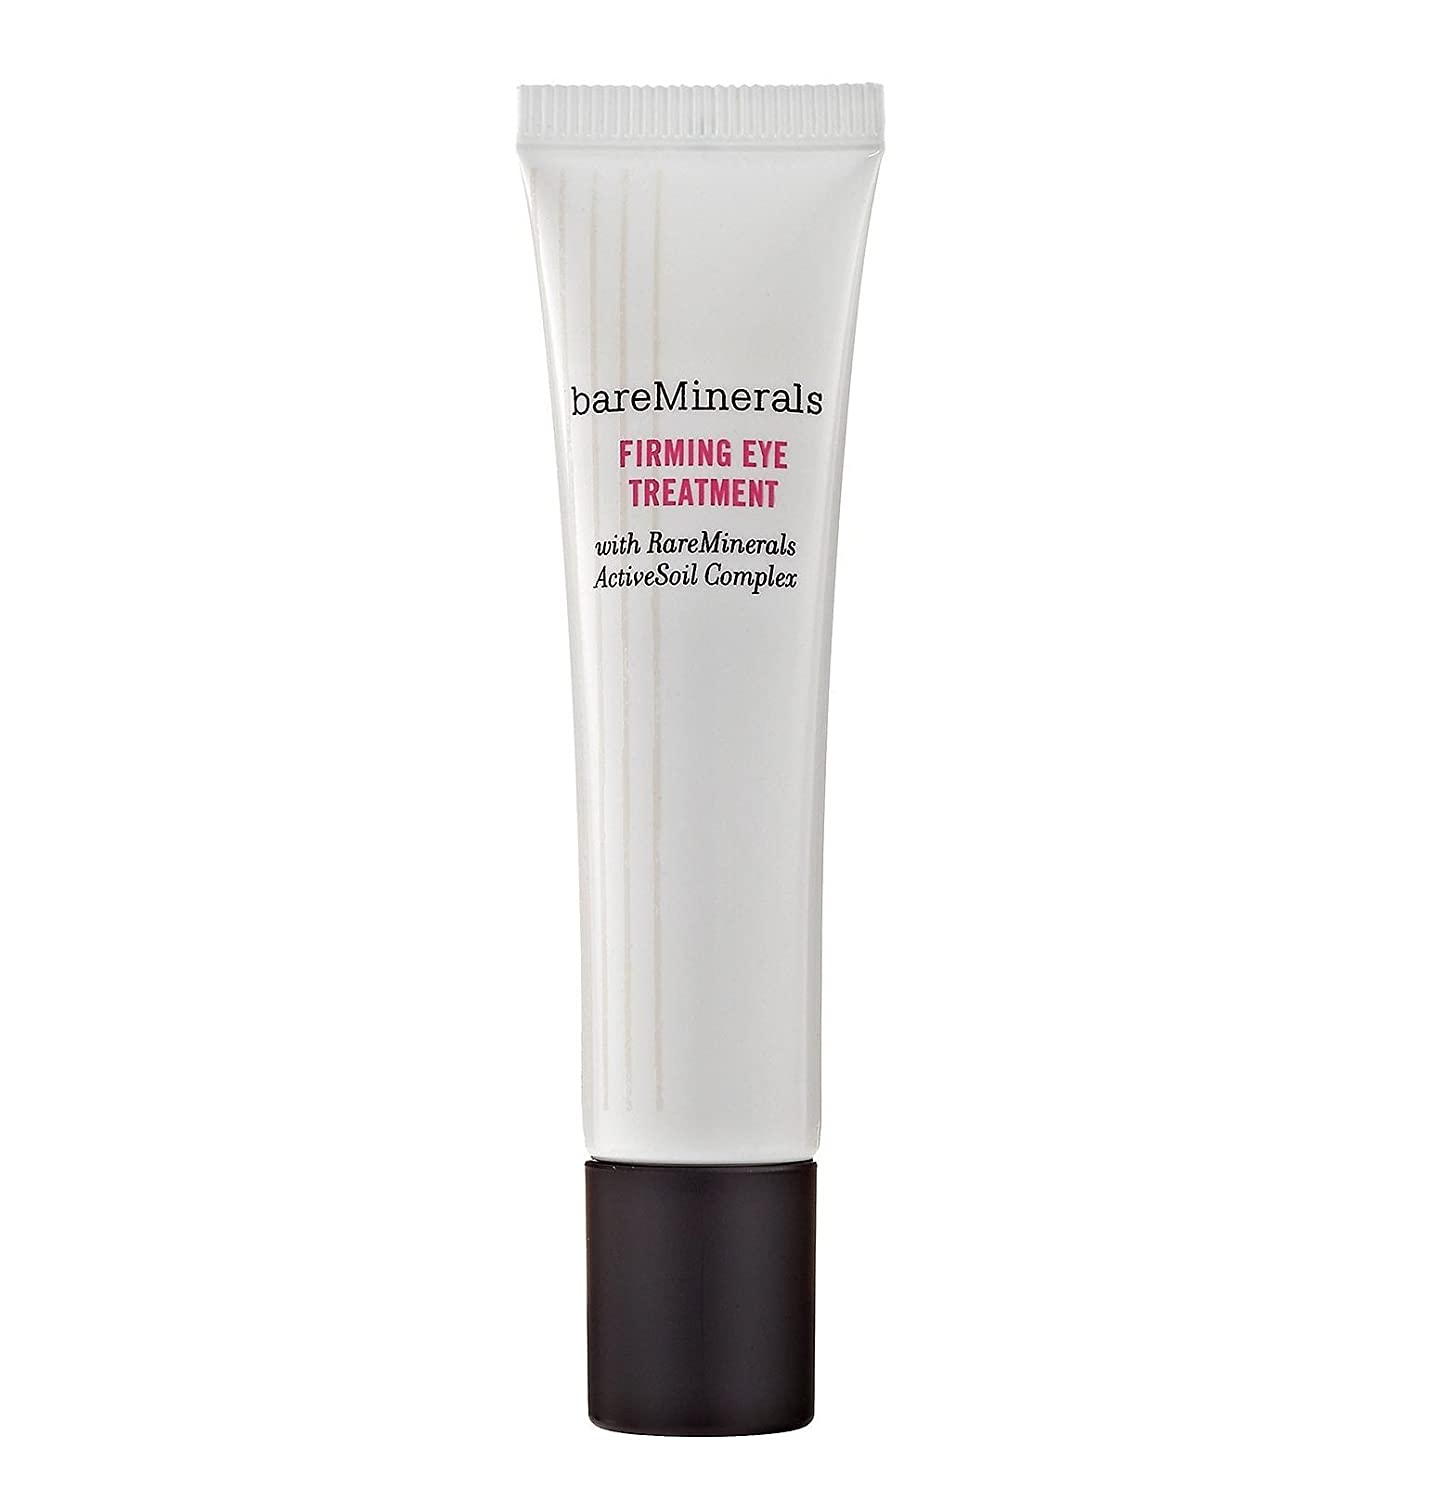 related product products/images/BareMinerals-FirmingEyeTreatment.jpg